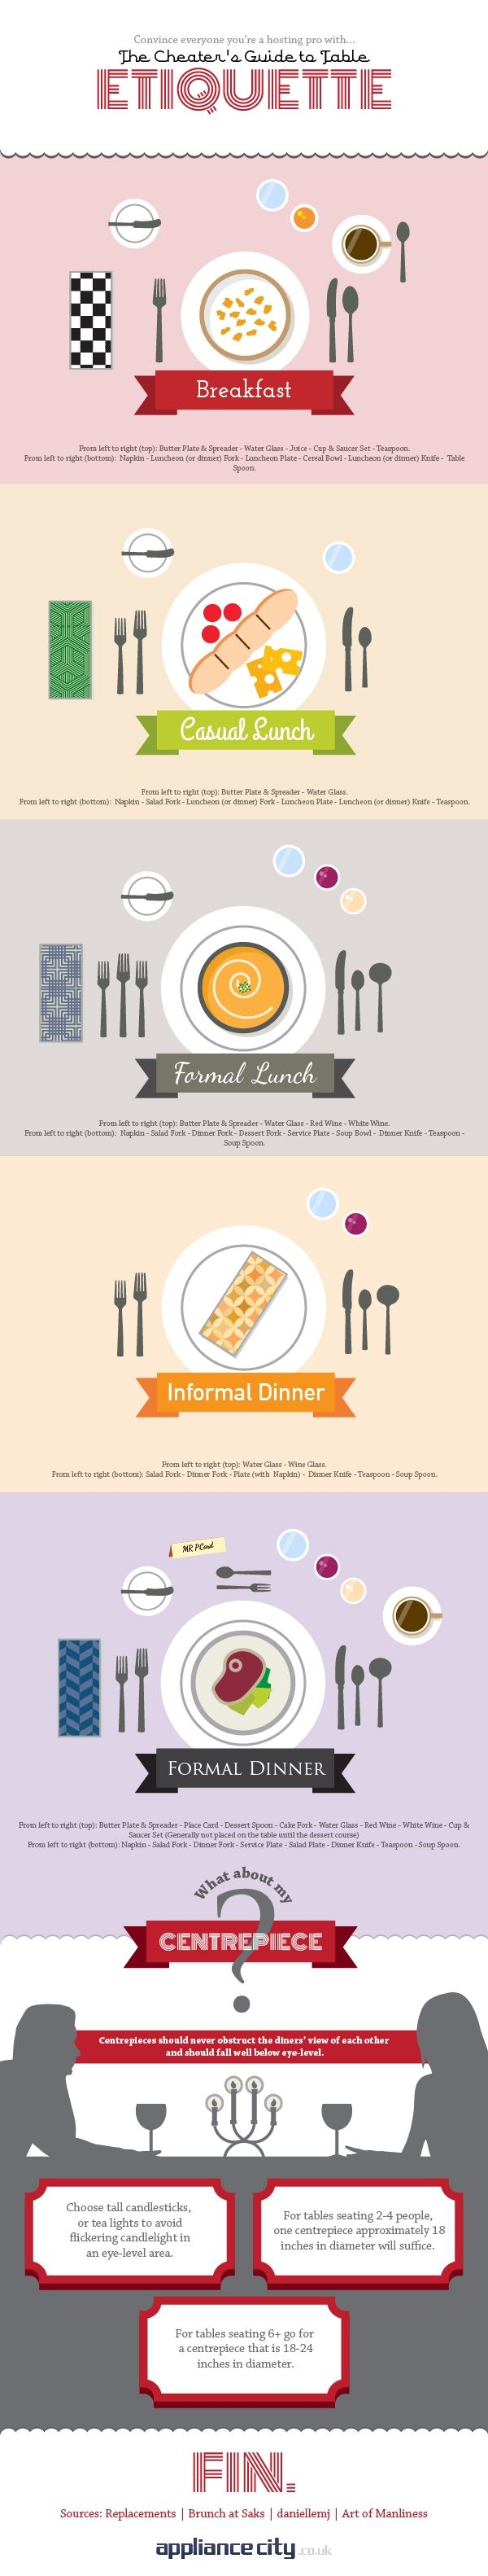 Perfect Dining Etiquette Cheat Sheet